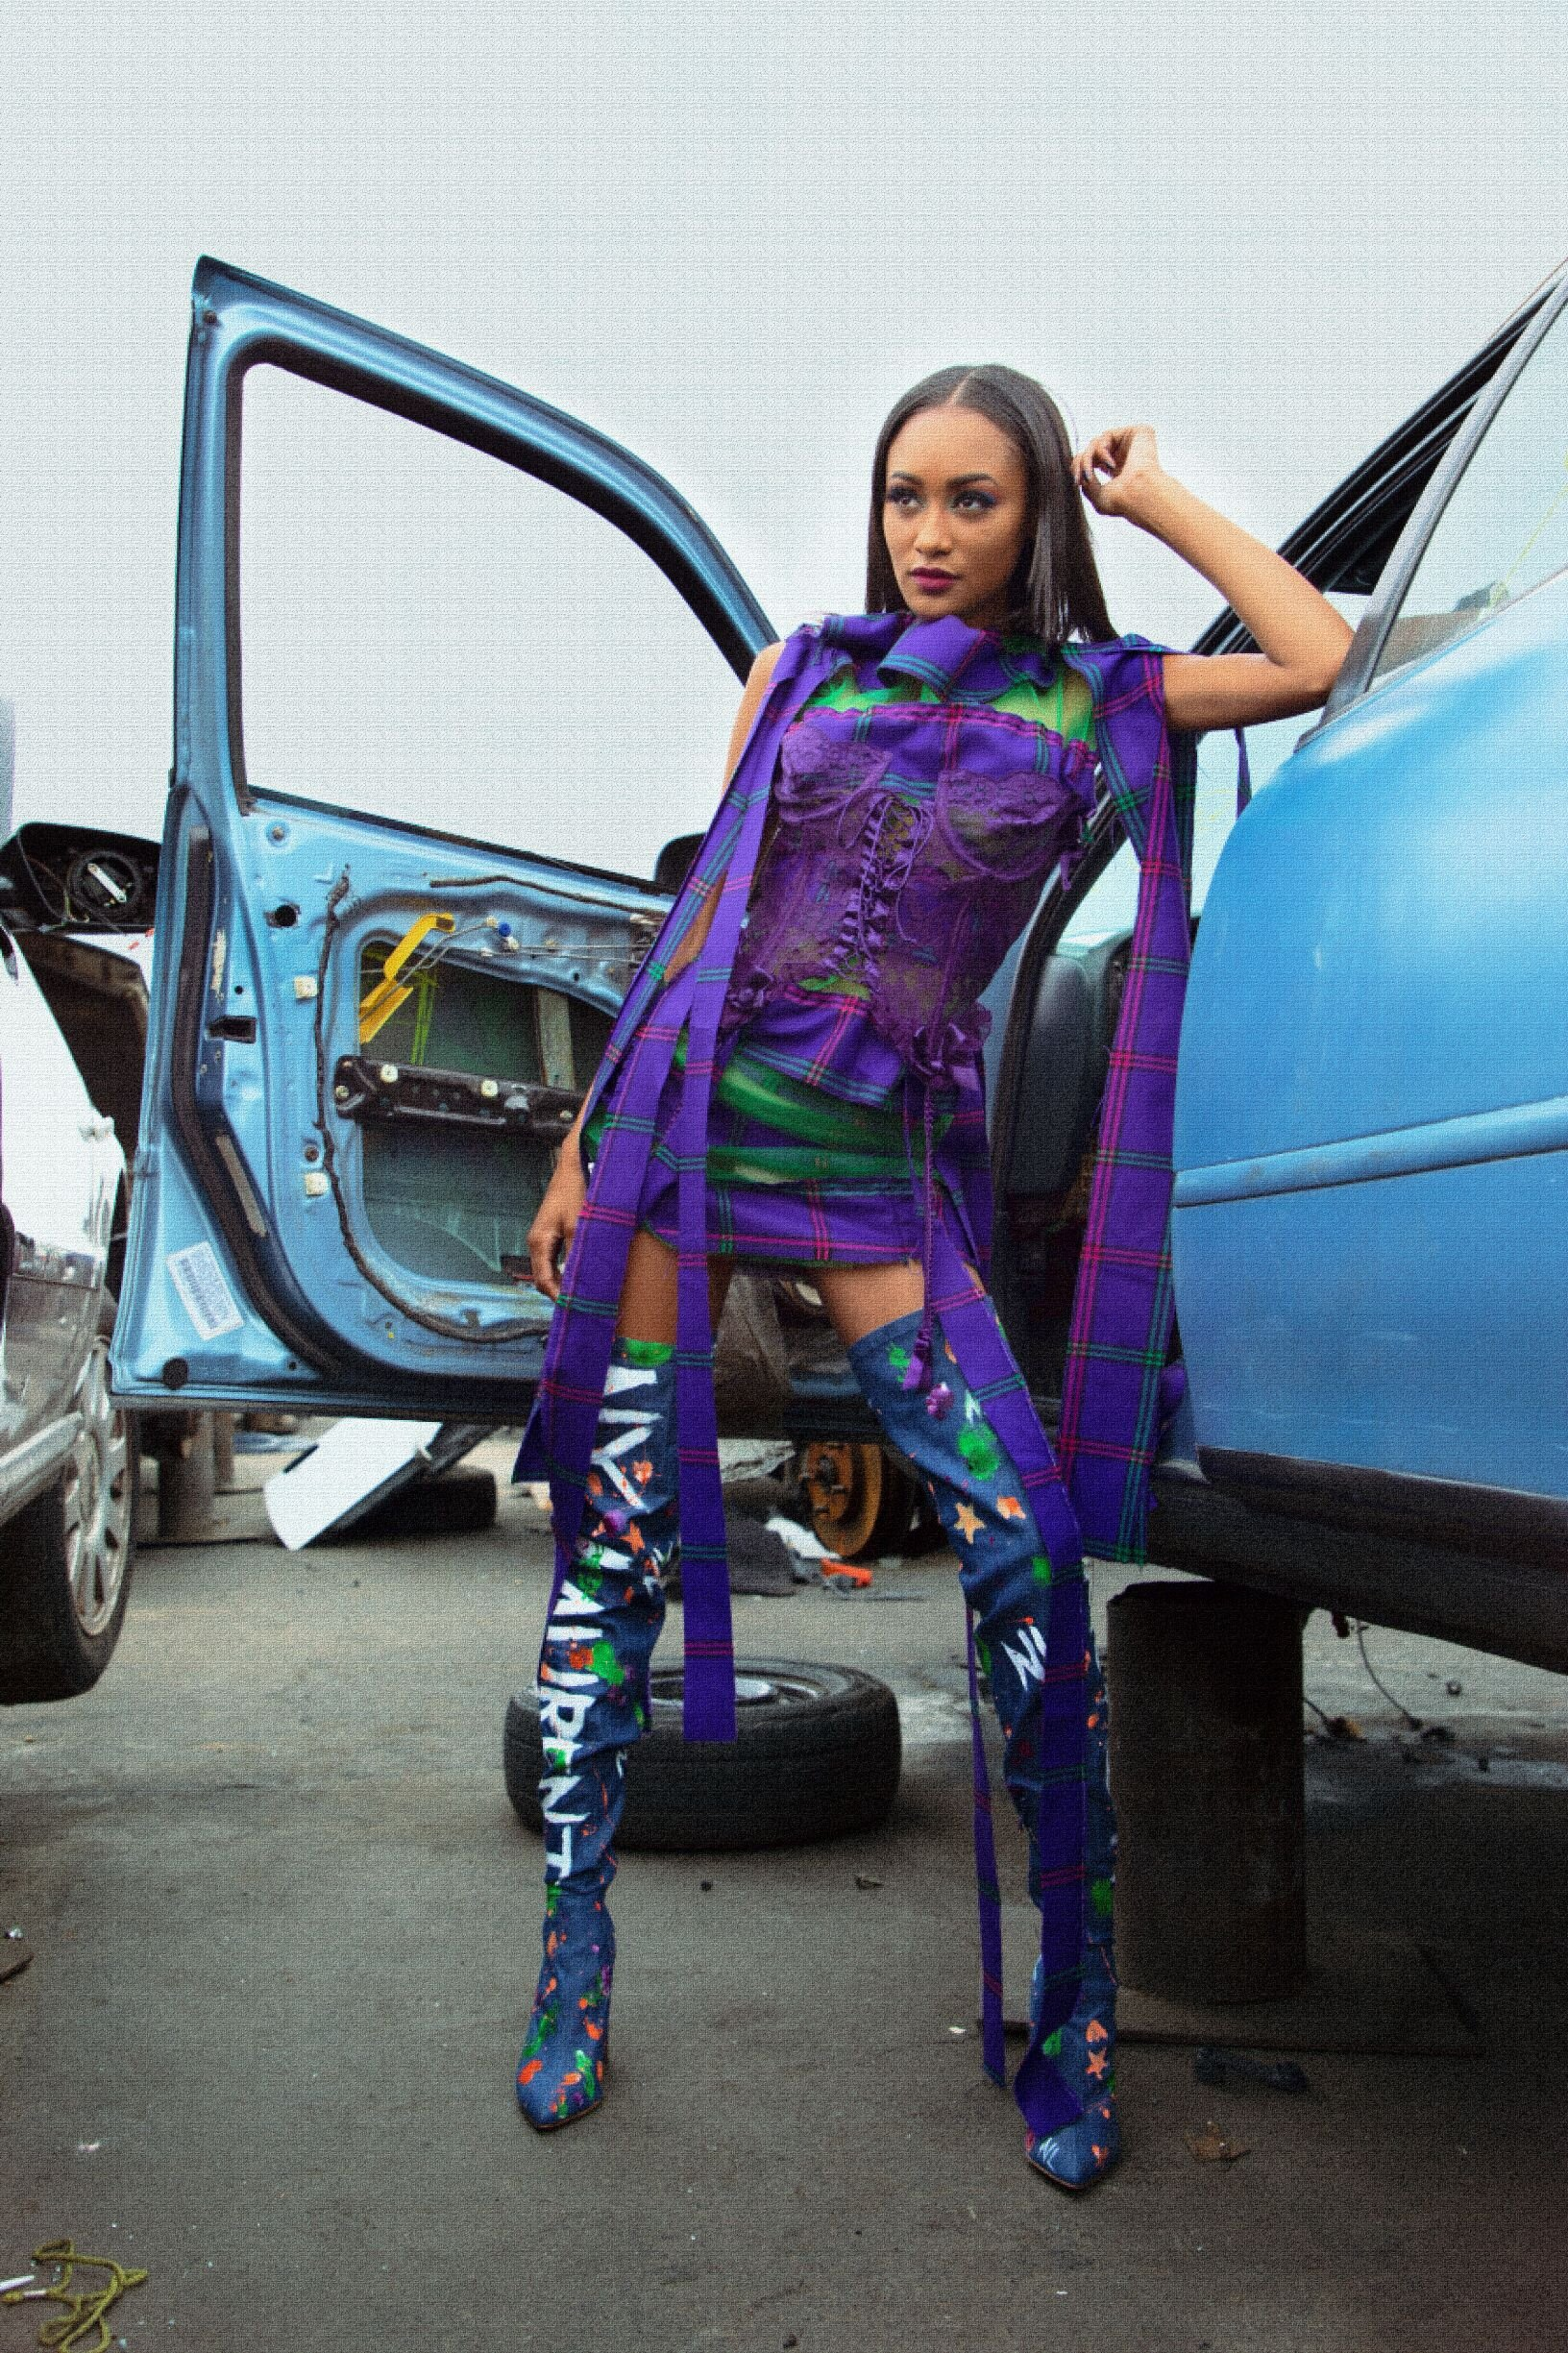 Model proves even broken down cars can be high fashion